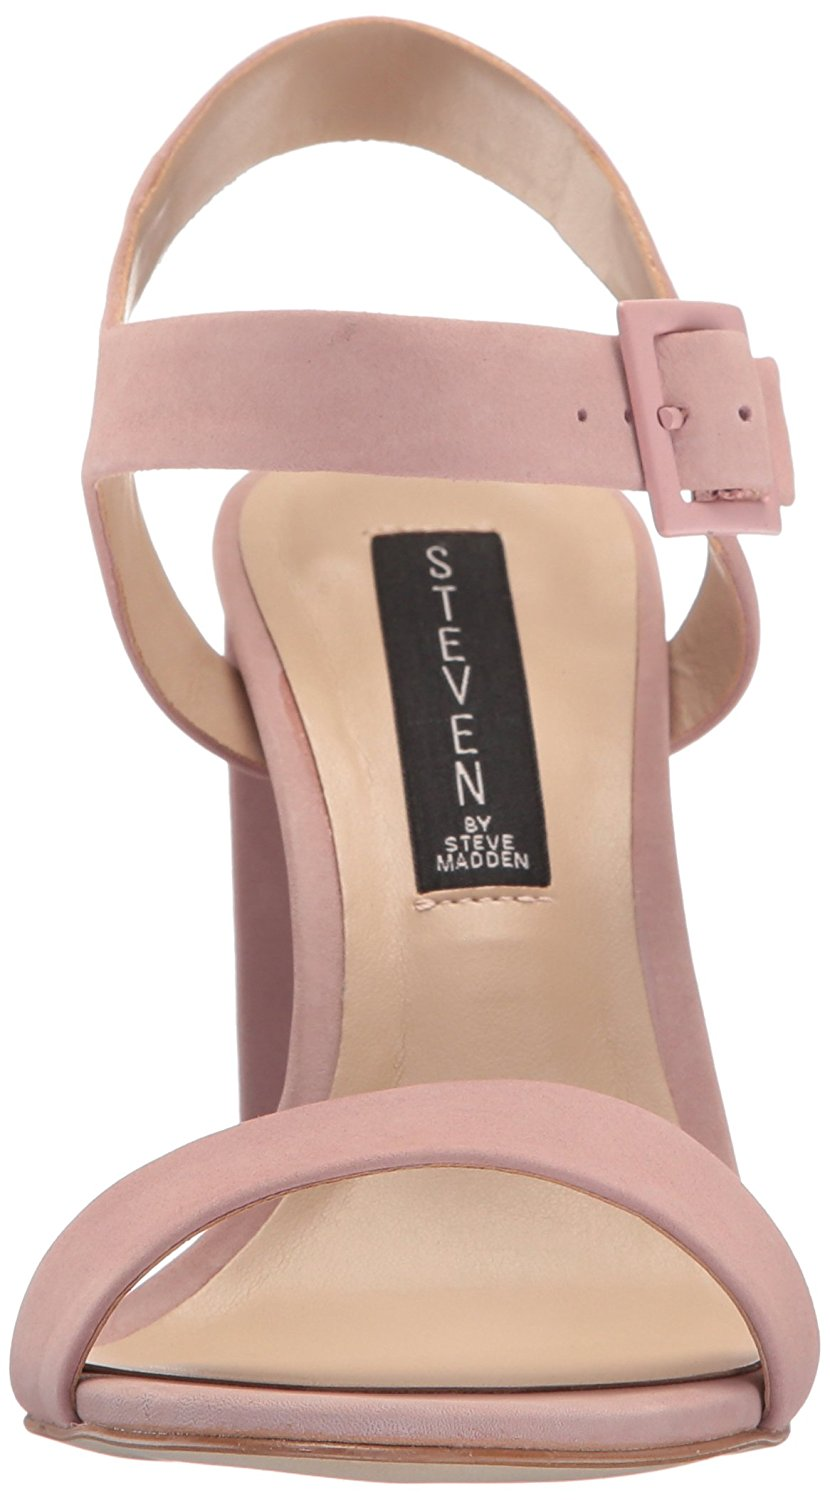 de36e8c439f6 Steven by Steve Madden Eisla Womens Heeled Sandals Pink Nubuck 7.5 US   5.5  UK